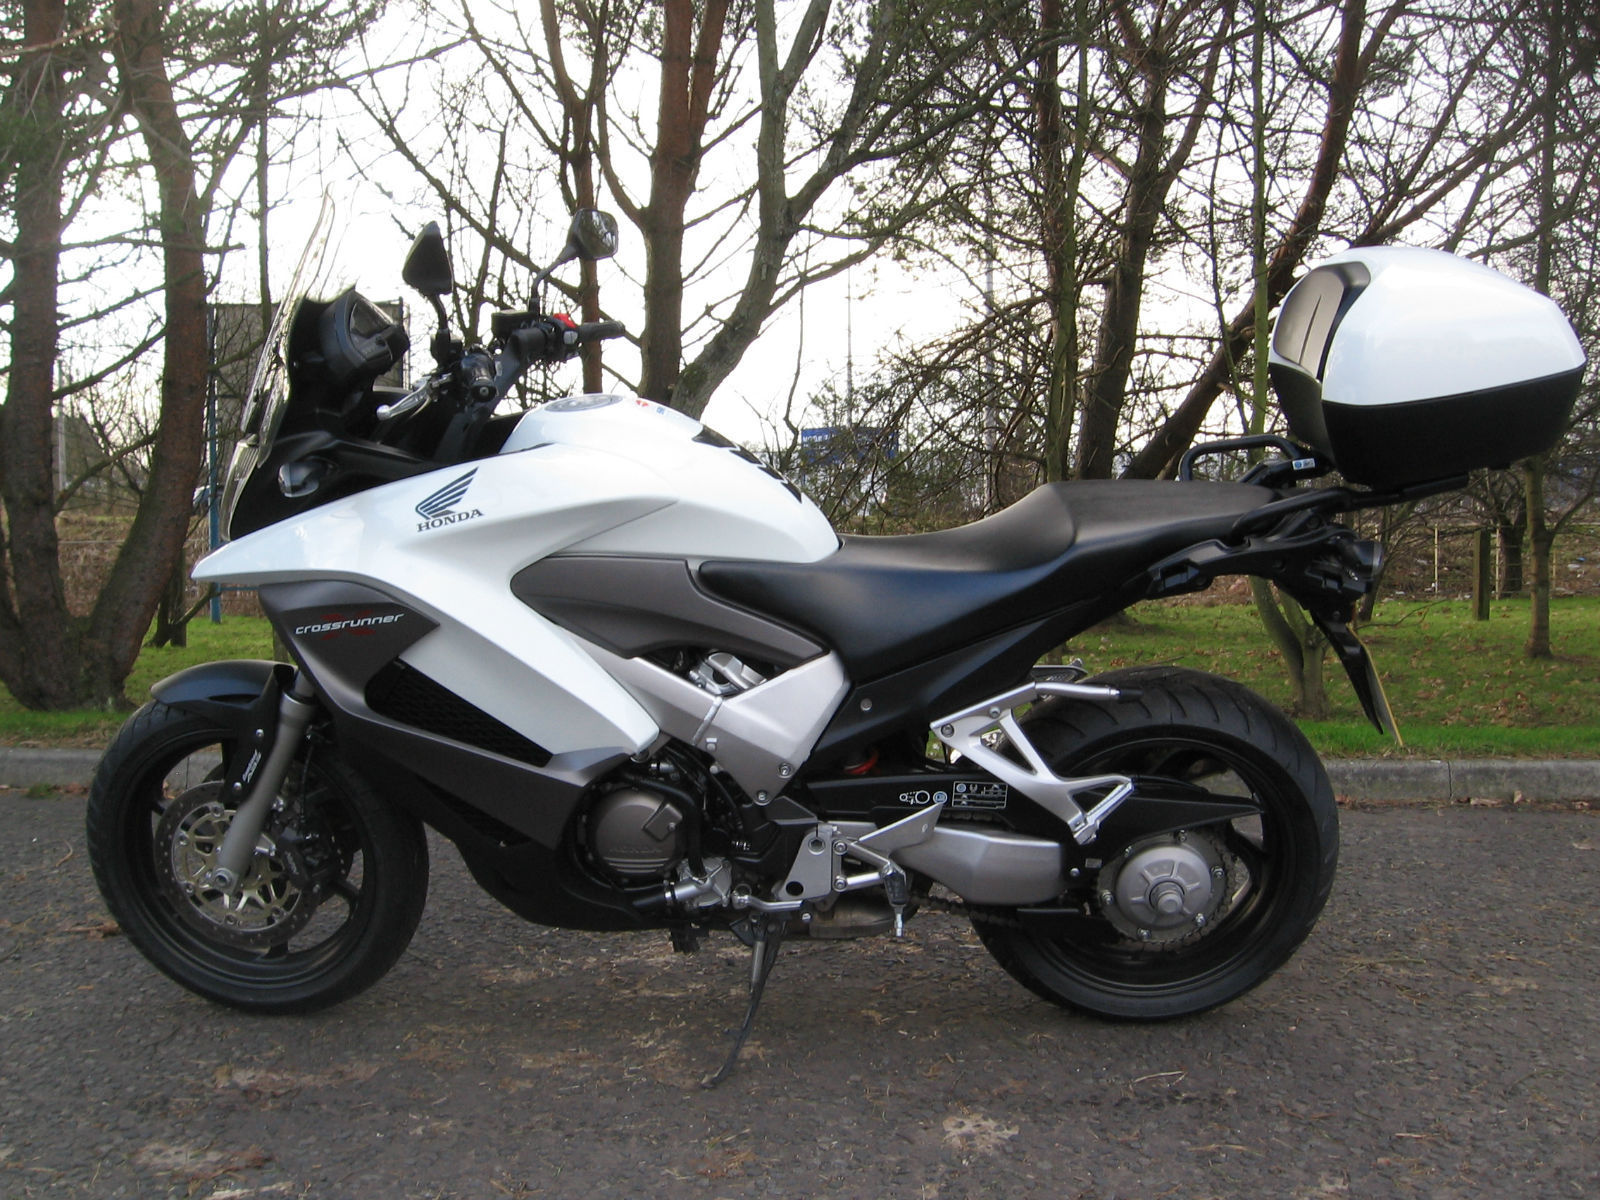 2011 61 honda vfr800x crossrunner low miles. Black Bedroom Furniture Sets. Home Design Ideas